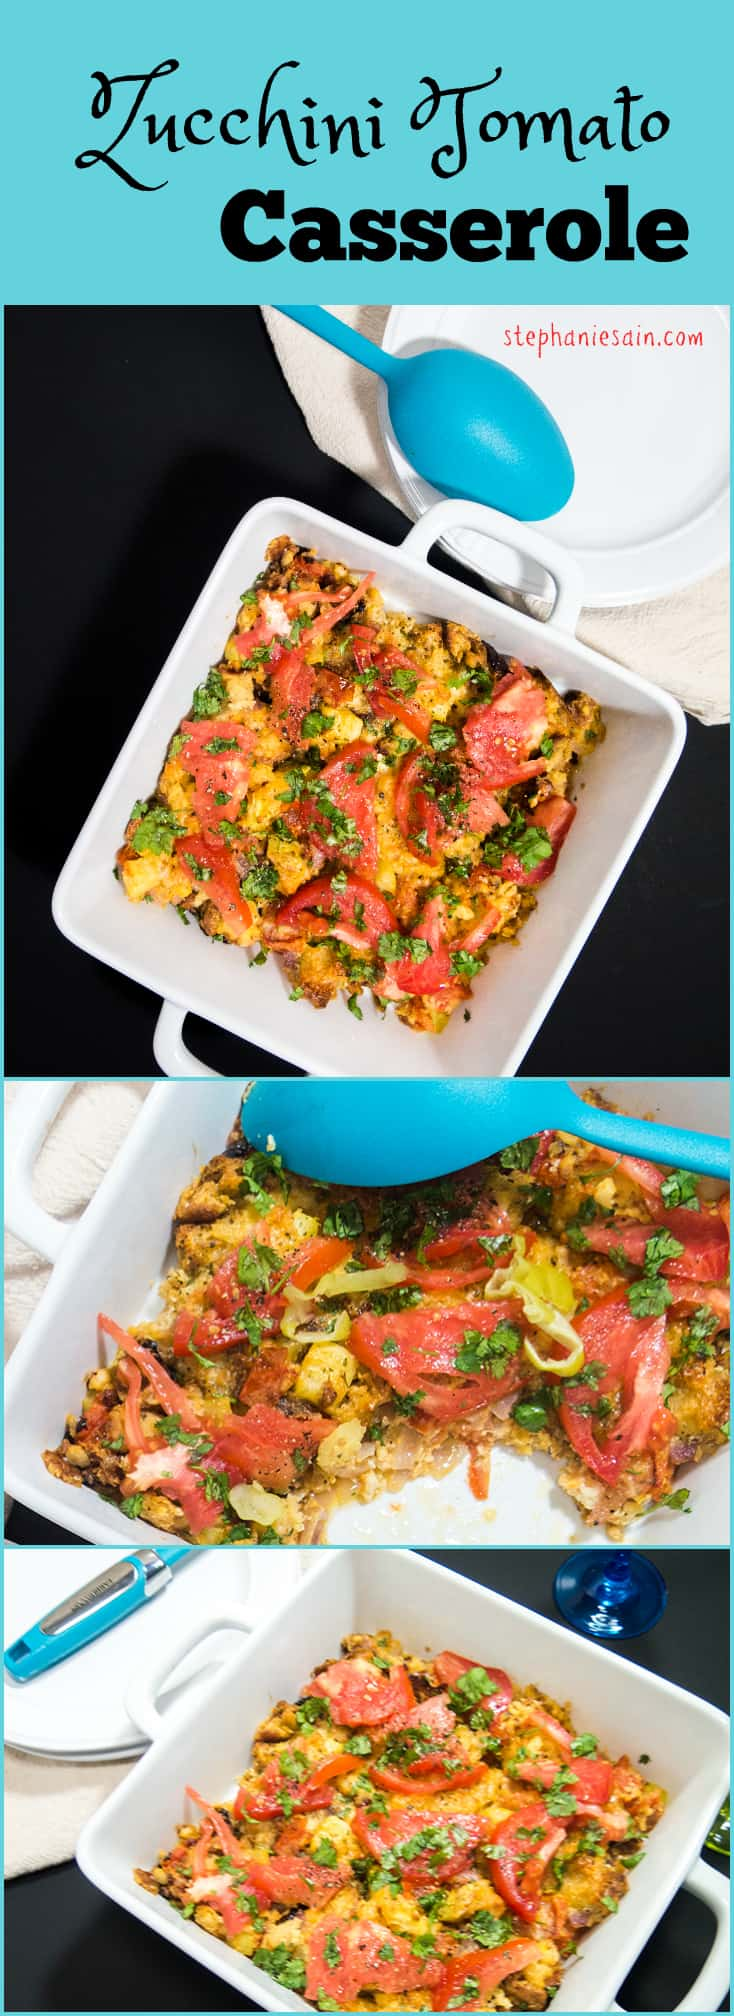 Zucchini Tomato Casserole is perfect for any occasion. Can be made ahead and easily re-heated. Vegetarian and Gluten Free.